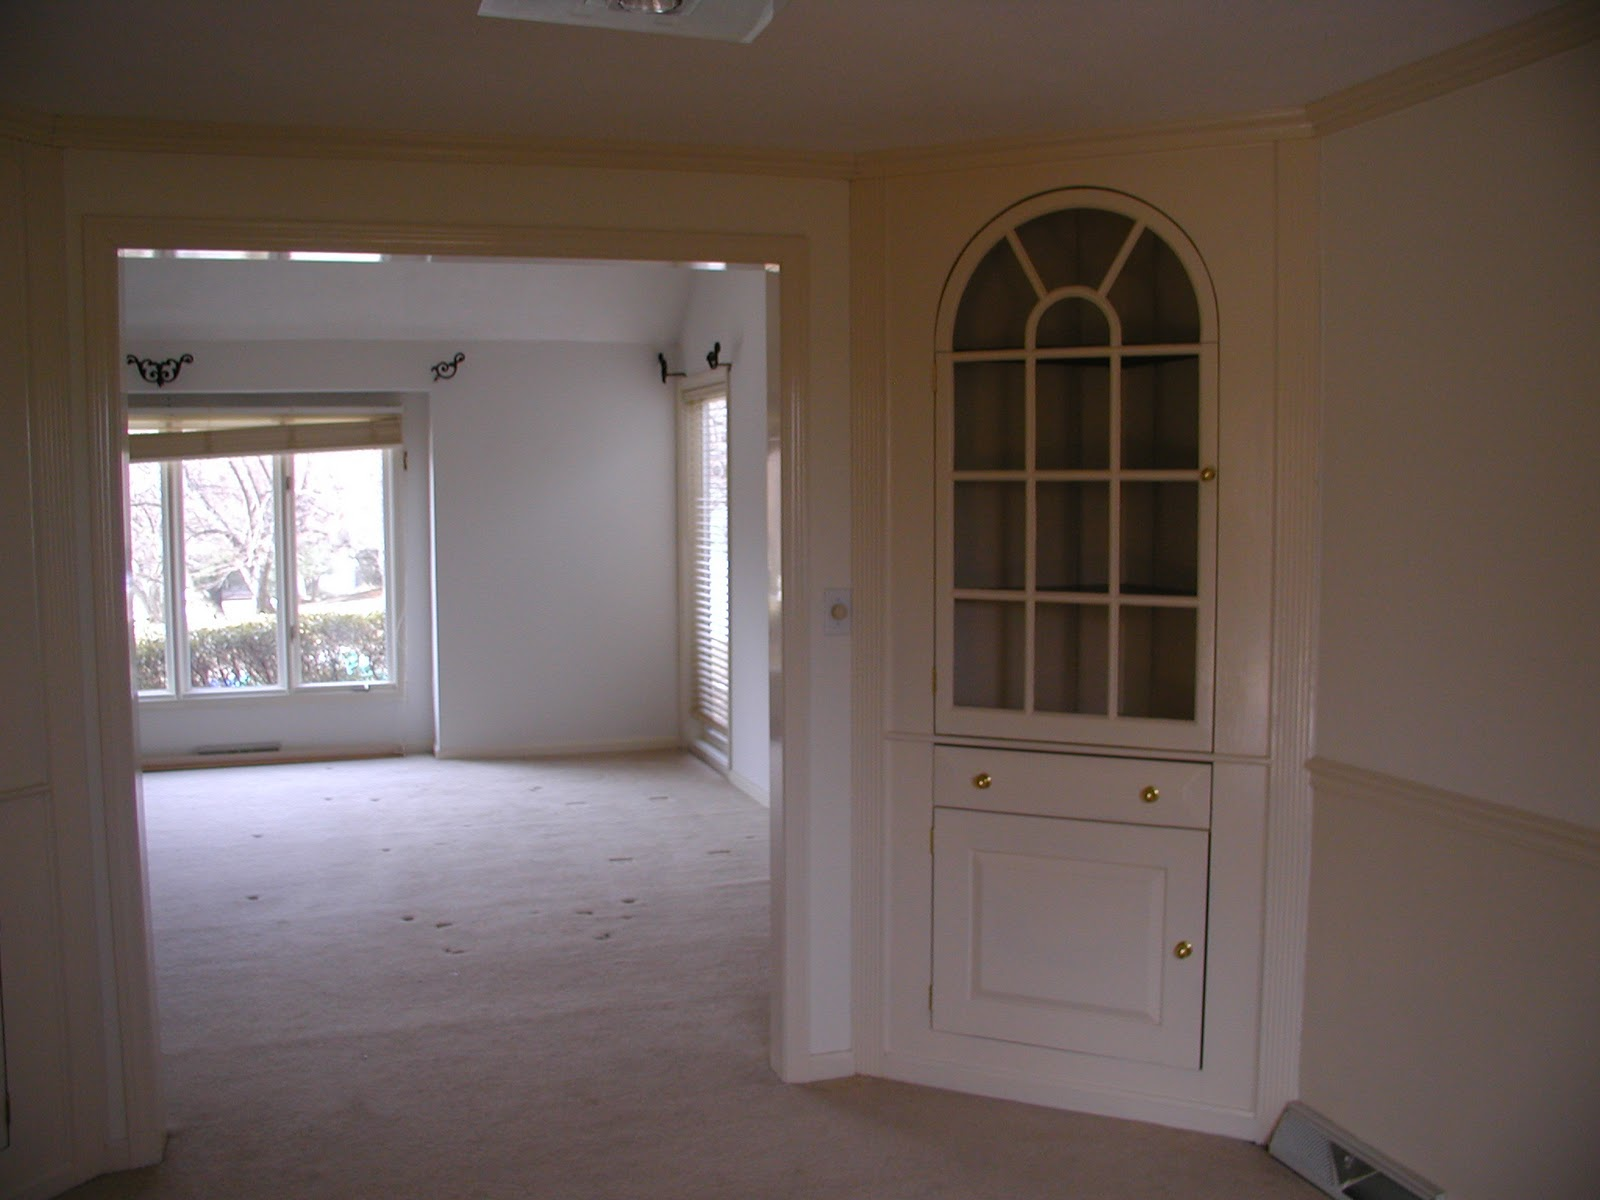 Living Dining Room Cabinets: Betsy Speert's Blog: OMG! A New Space